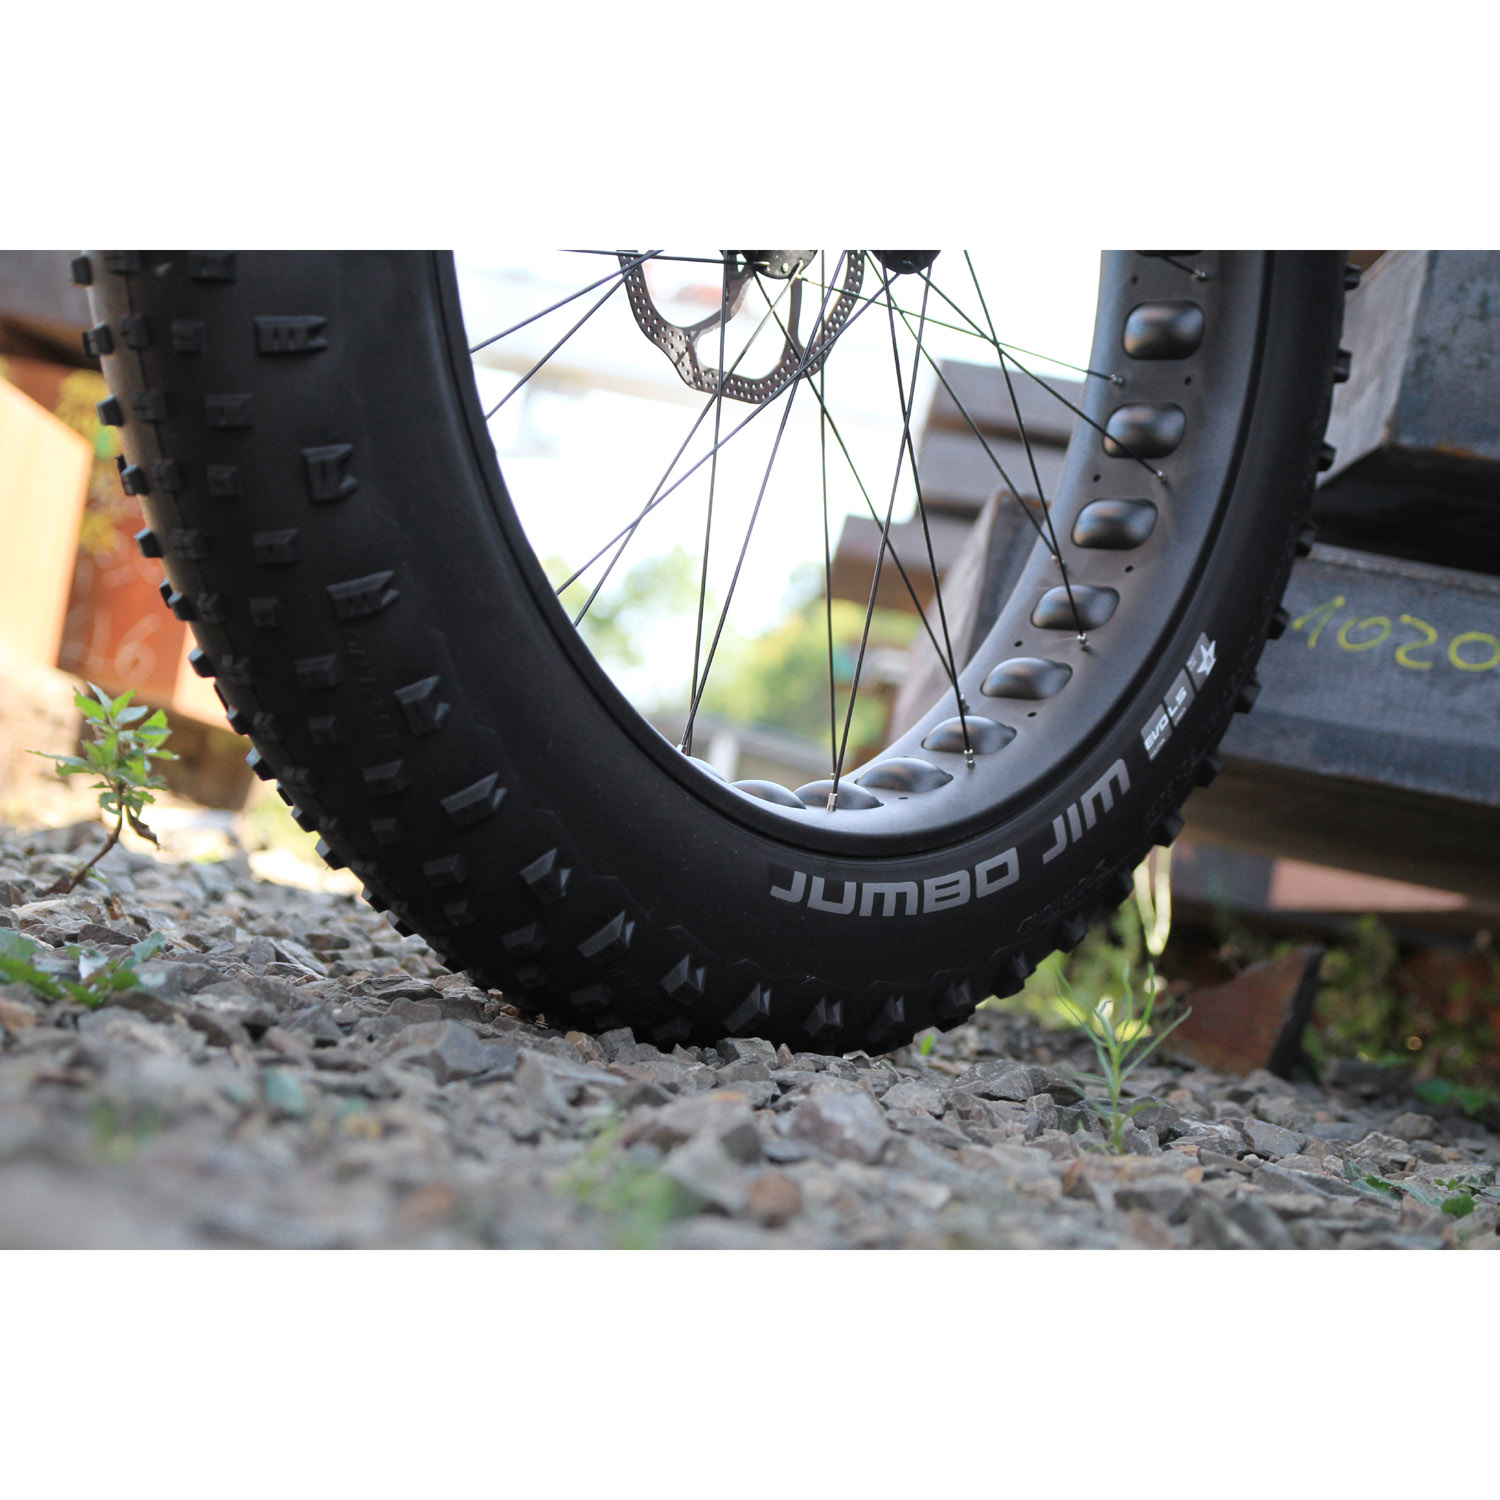 schwalbe jumbo jim fatbike reifen 26 zoll 4 0 zoll. Black Bedroom Furniture Sets. Home Design Ideas